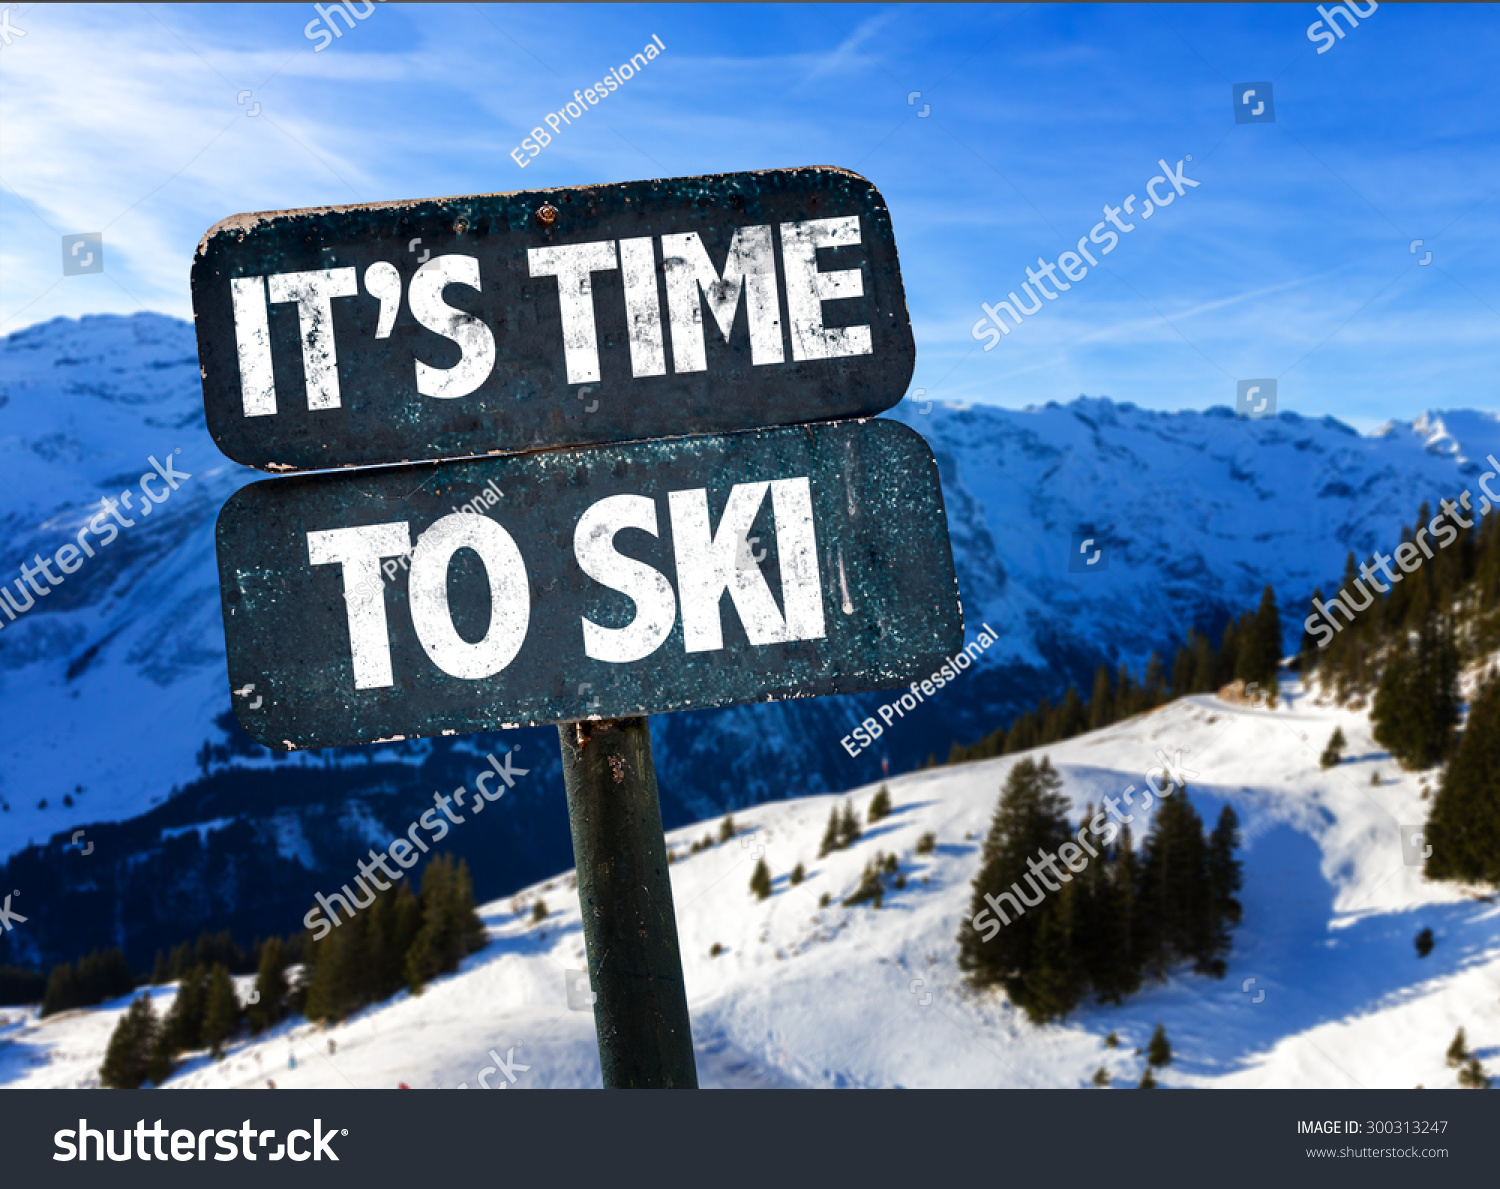 Its time to ski sign with sky background stock photo 300313247